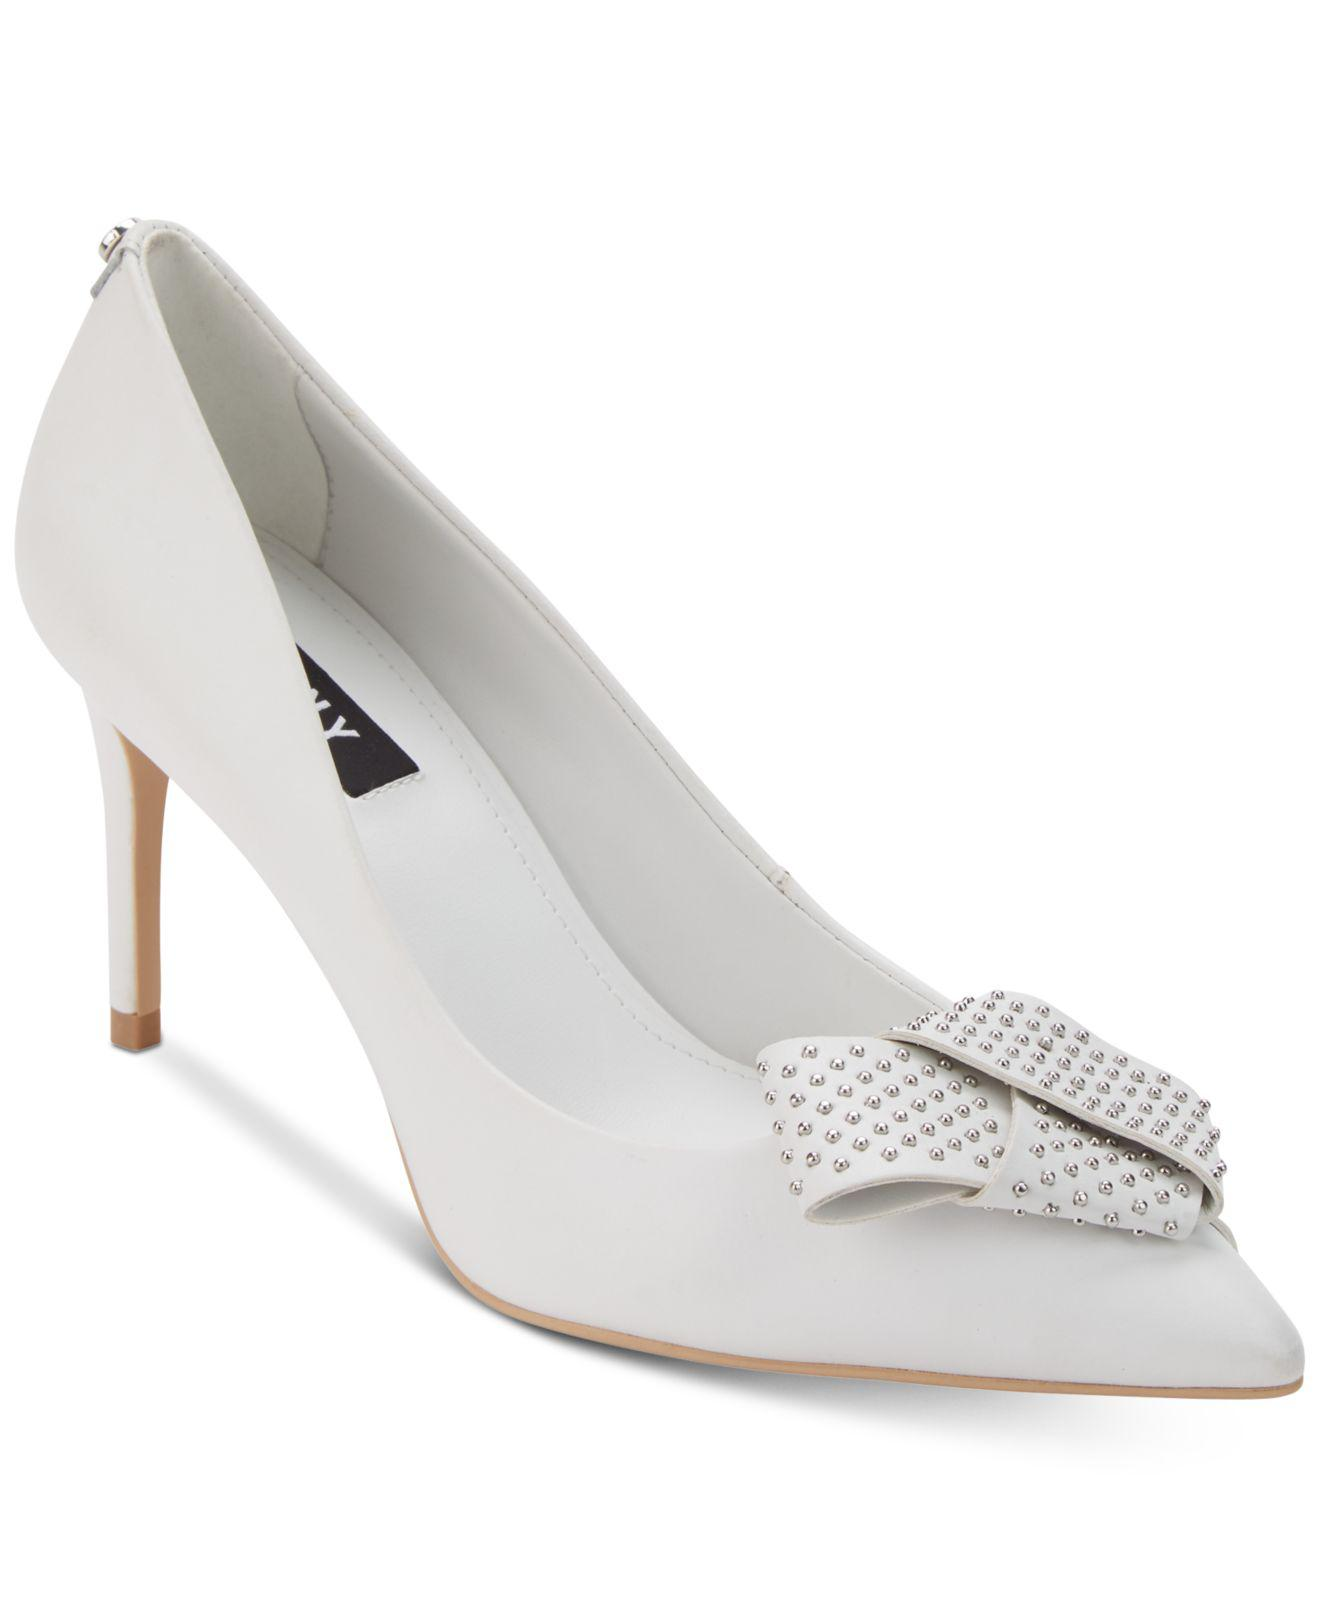 DKNY Womens Livia Leather Pointed Toe Classic Pumps